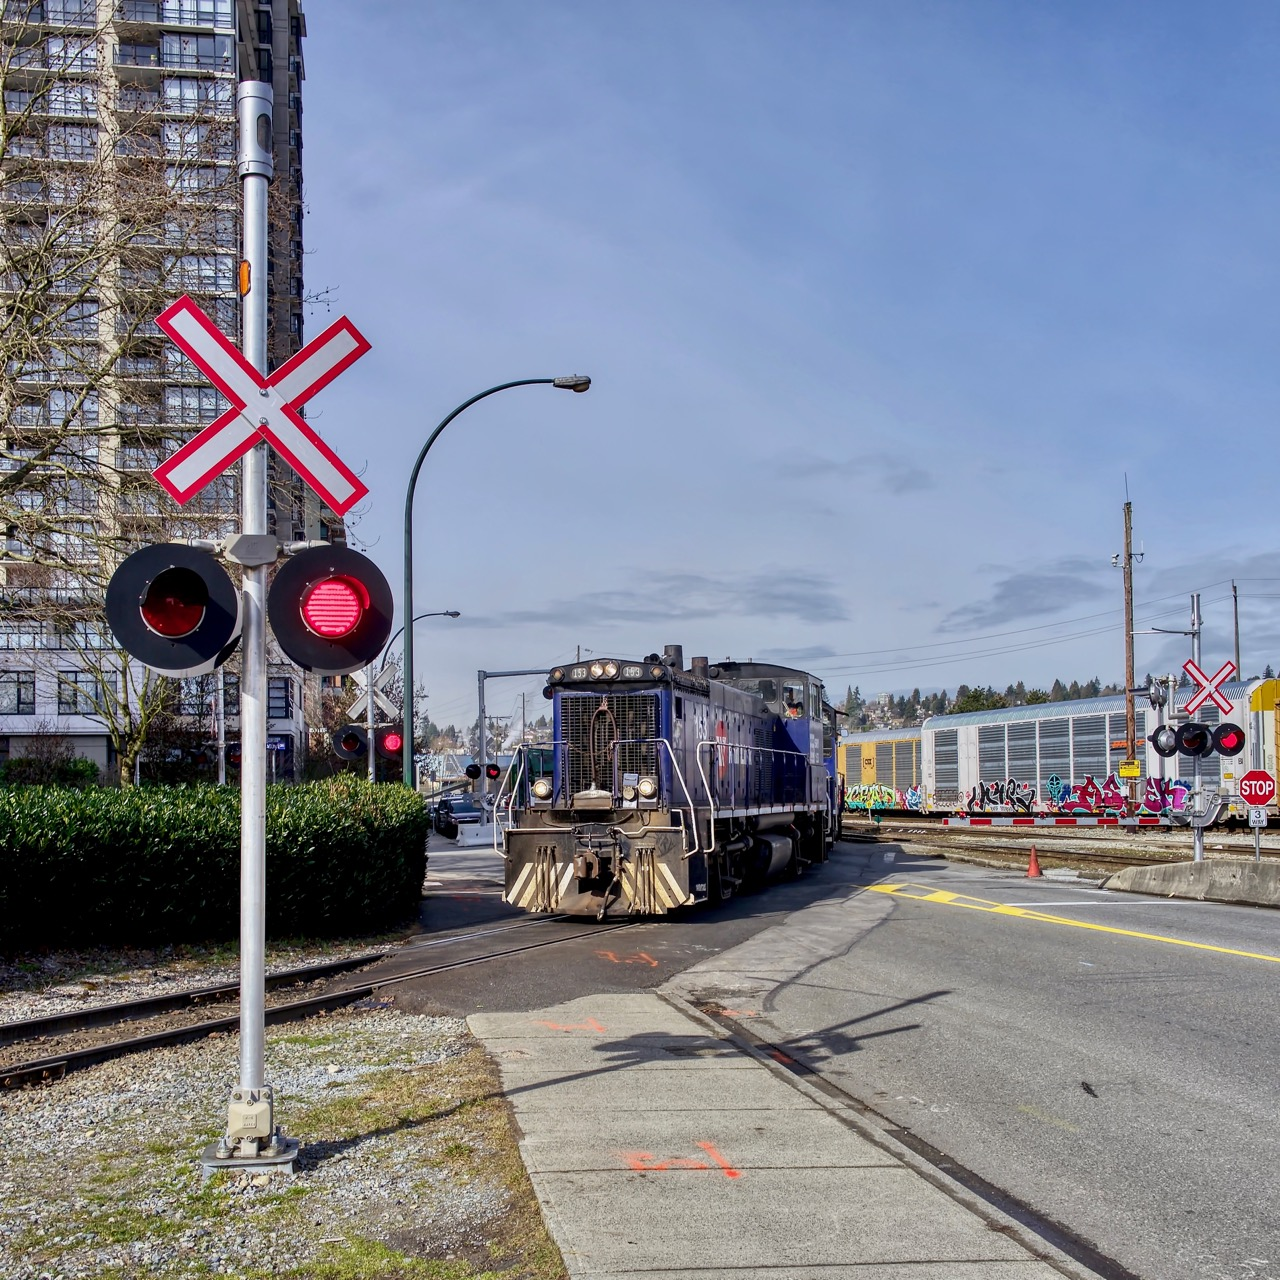 Southern Railway of B.C. (SRY) locomotive 153 crosses street in New Westminster, B.C.